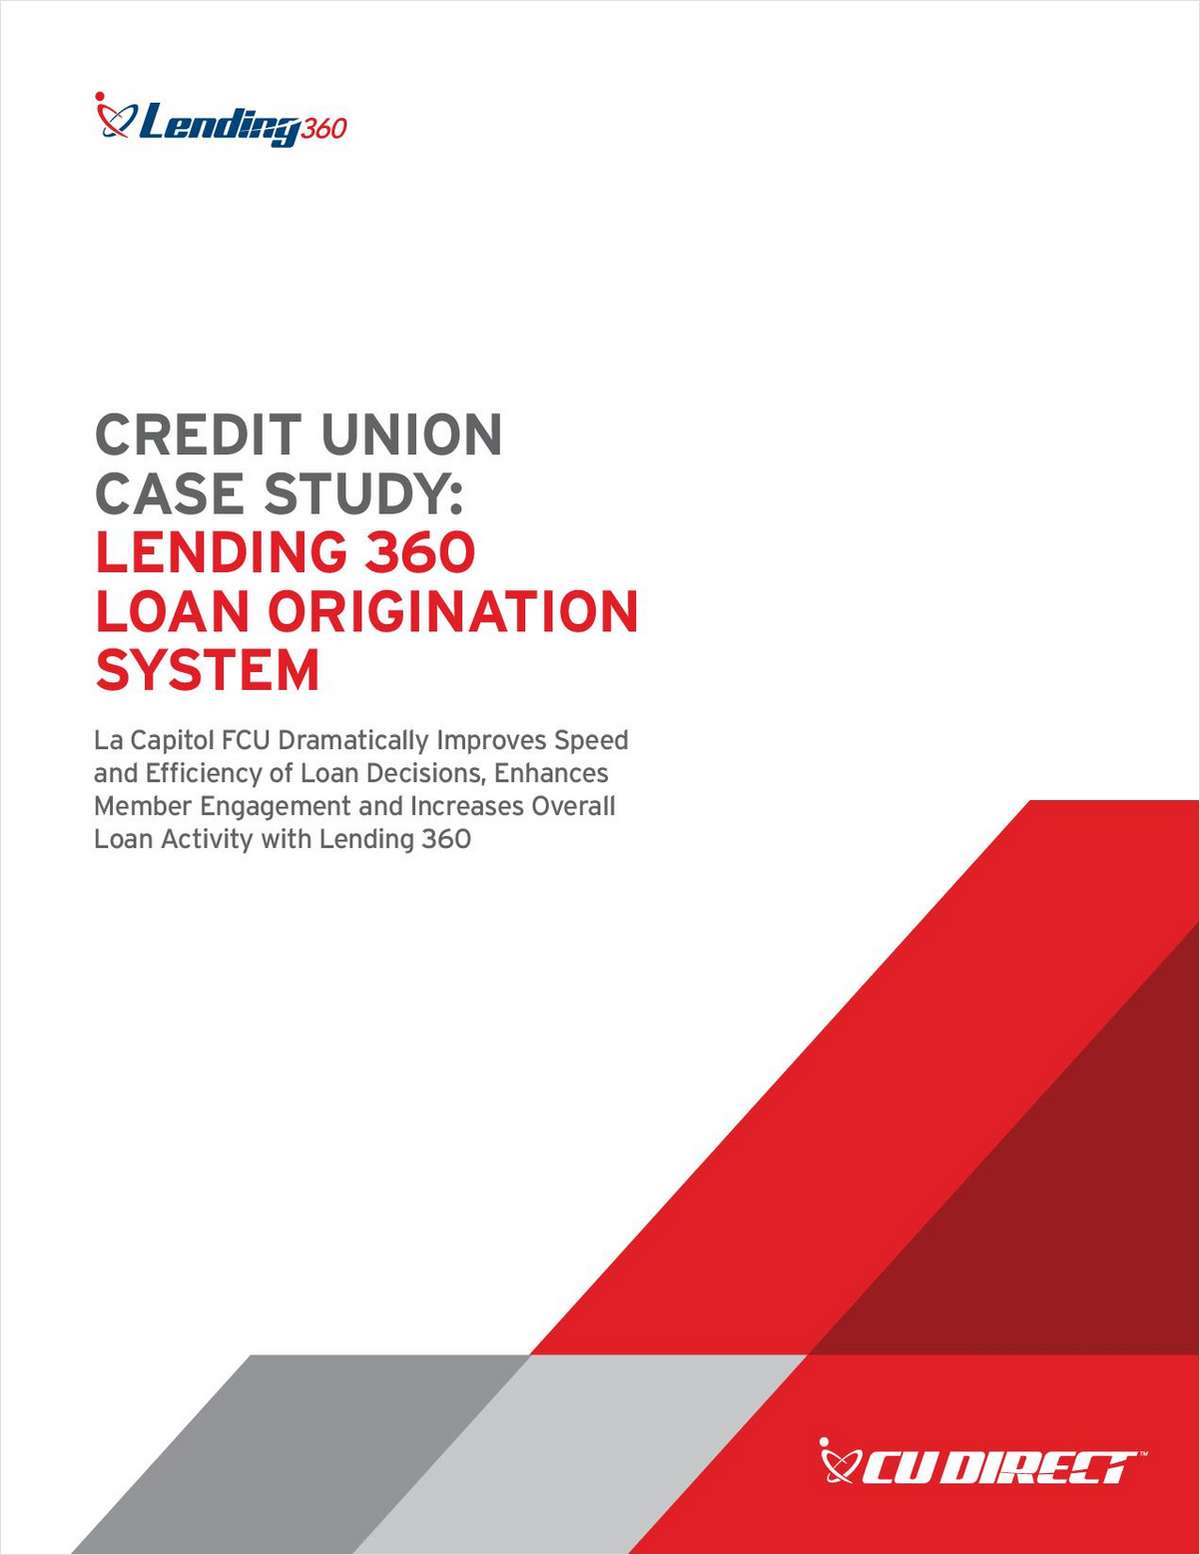 Improving Speed and Efficiency of Loan Decisions - A Case Study of La Capitol Federal Credit   Union